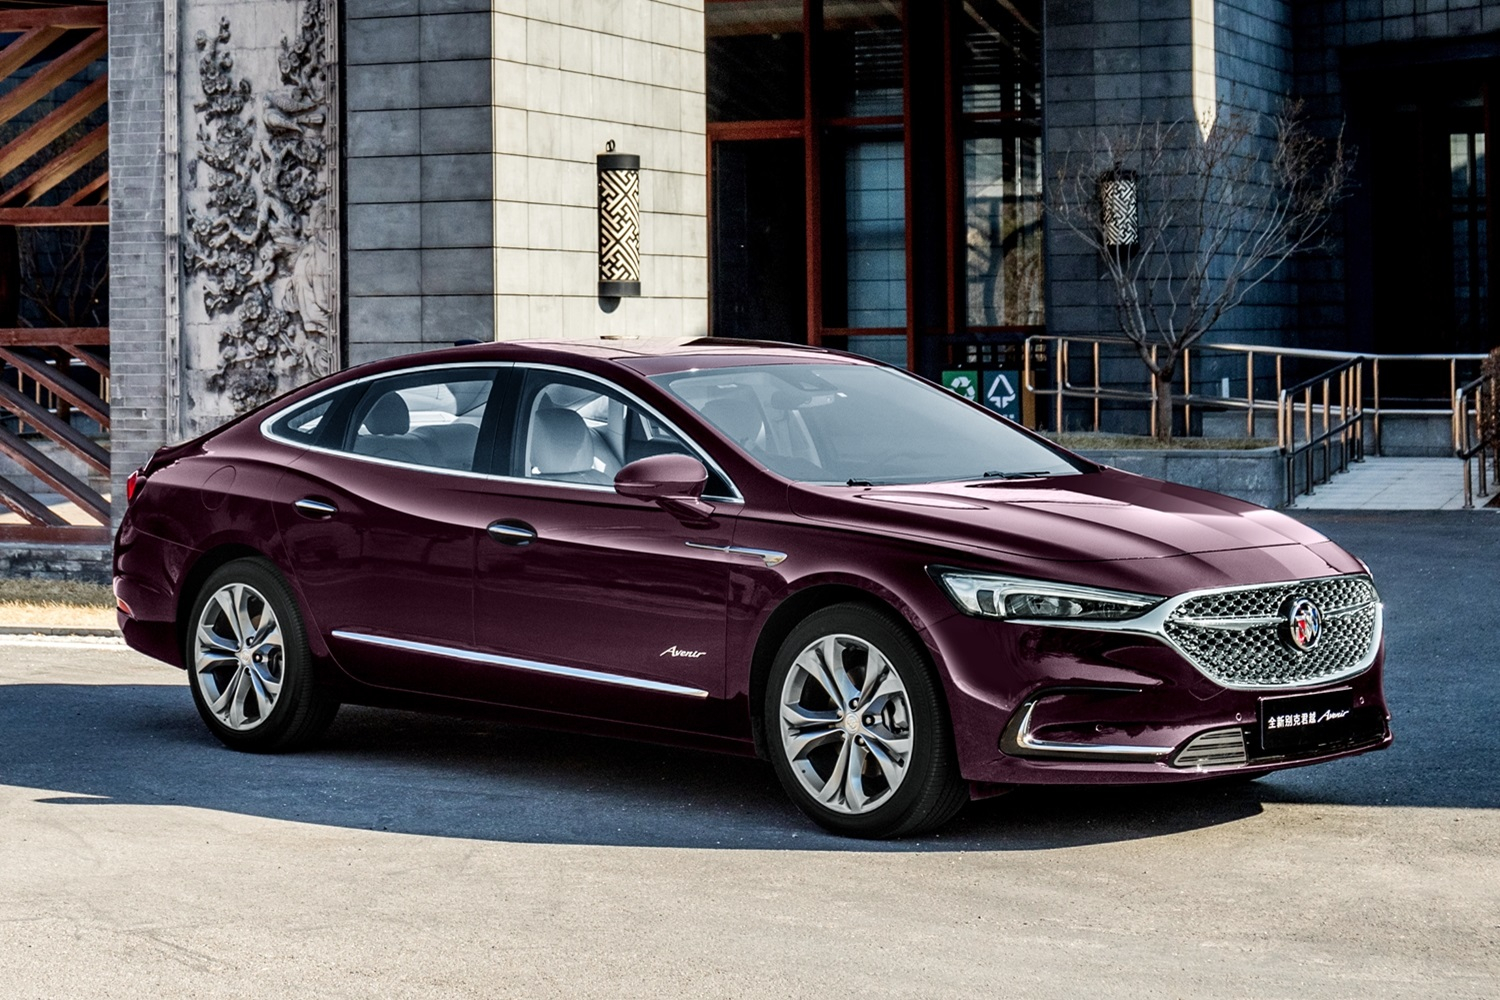 2021 Buick Lacrosse Gets More Refined Than Ever | Gm Authority Will There Be A New 2021 Buick Lacrosse